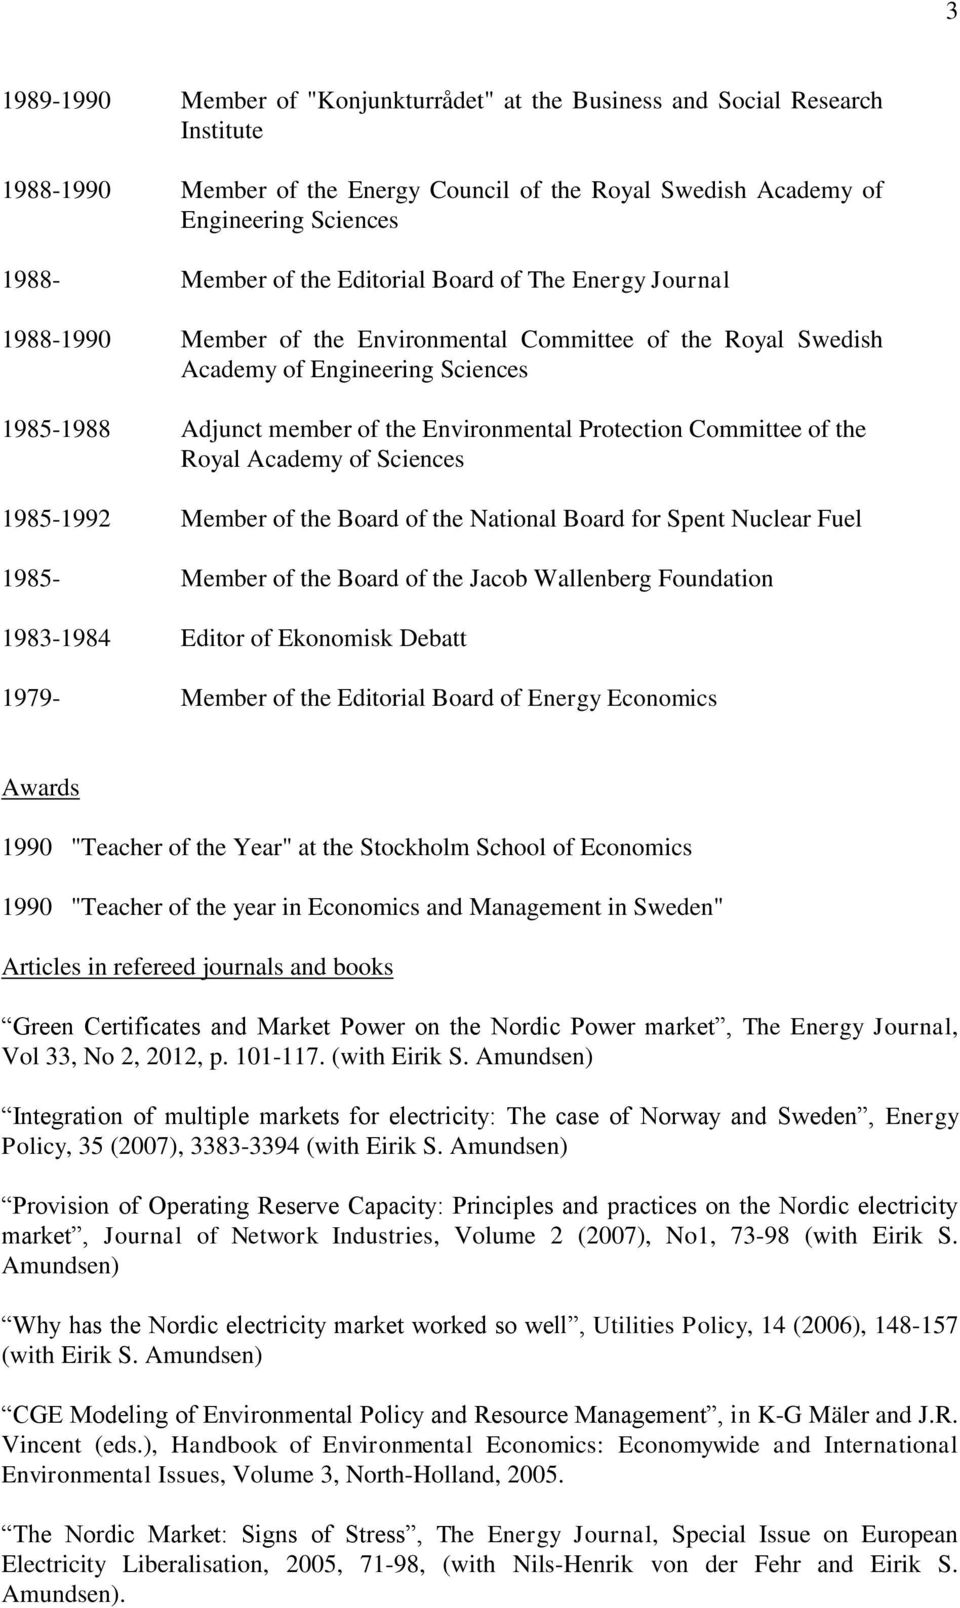 Committee of the Royal Academy of Sciences 1985-1992 Member of the Board of the National Board for Spent Nuclear Fuel 1985- Member of the Board of the Jacob Wallenberg Foundation 1983-1984 Editor of